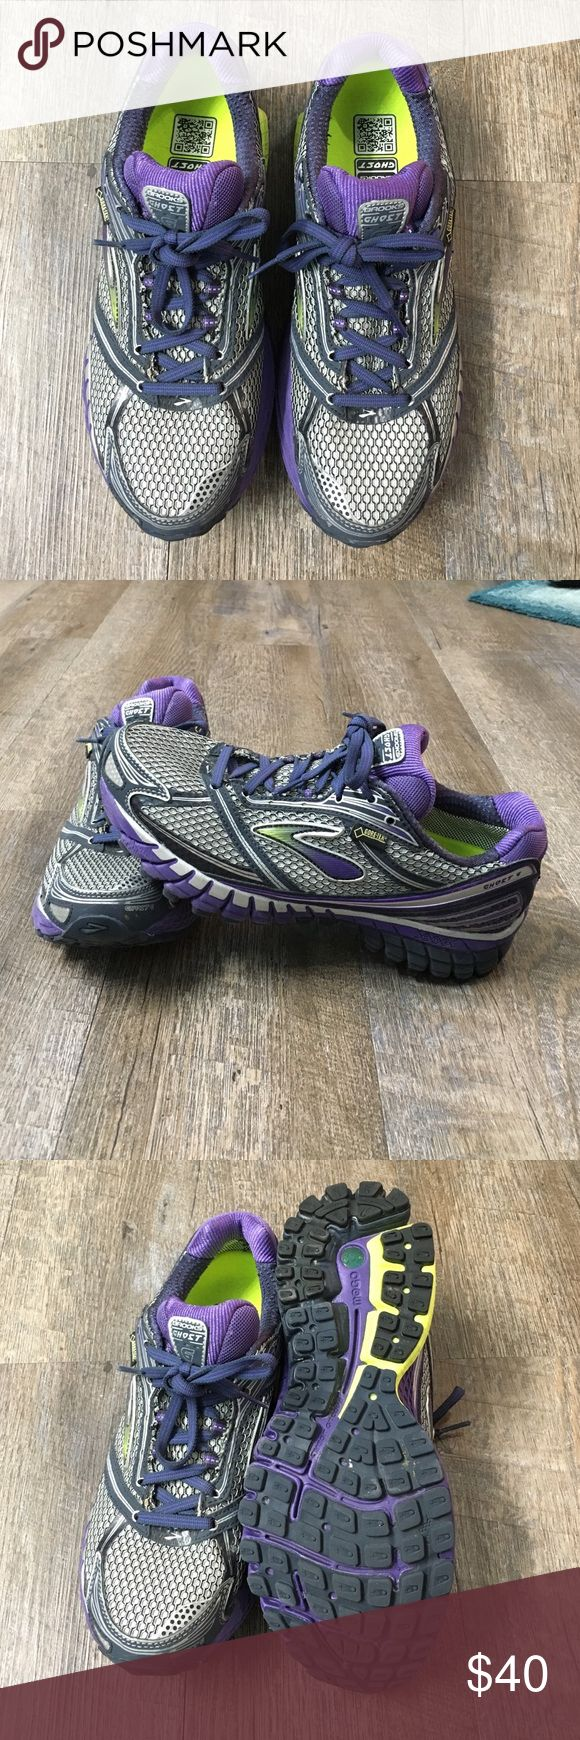 brooks ghost 6 gtx neutral running shoe womens size 8.5 brooks ghost 6 gtx neutral running shoe. water resistant with goretex. midnight and violet with some yellow in color. hardly any visible wear if any Brooks Shoes Athletic Shoes